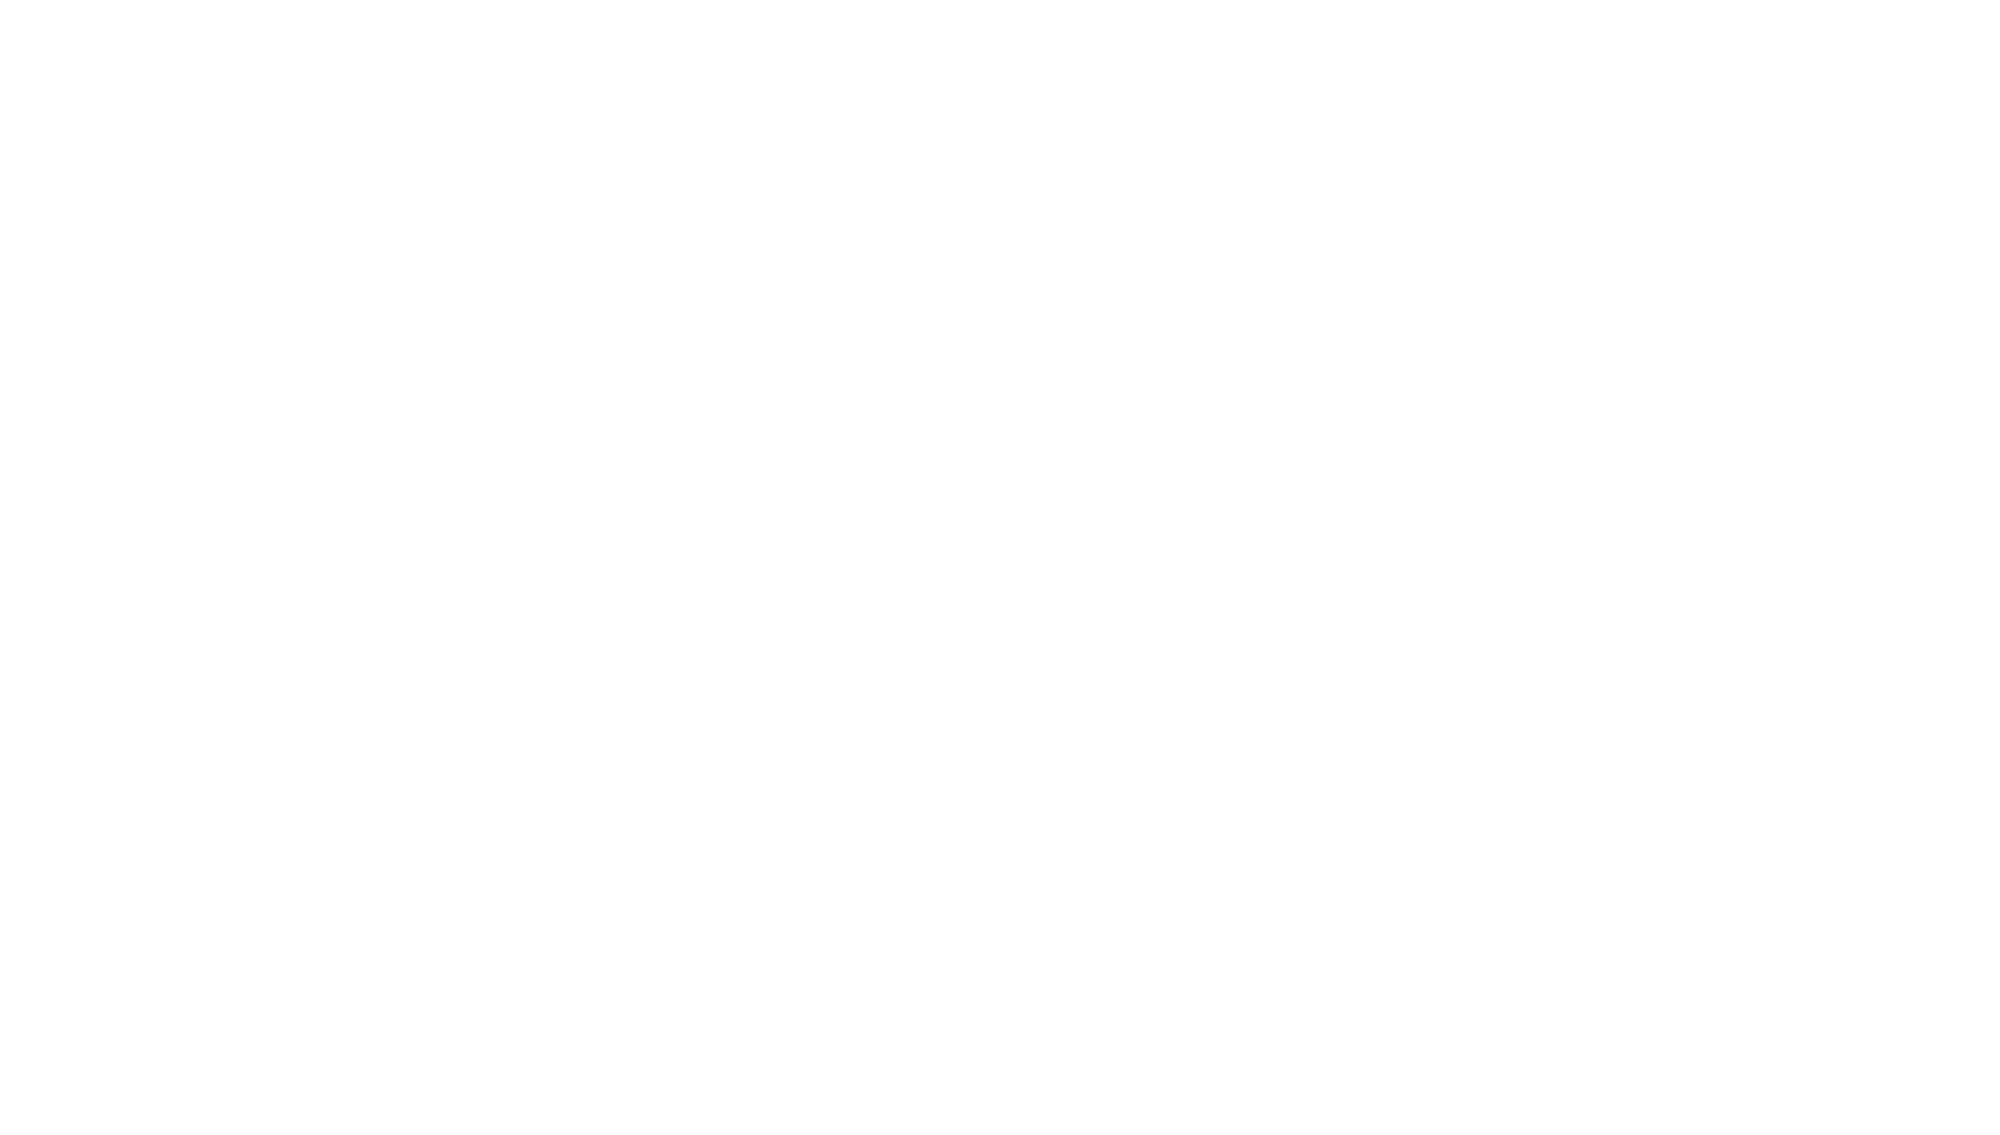 The Mule Trail